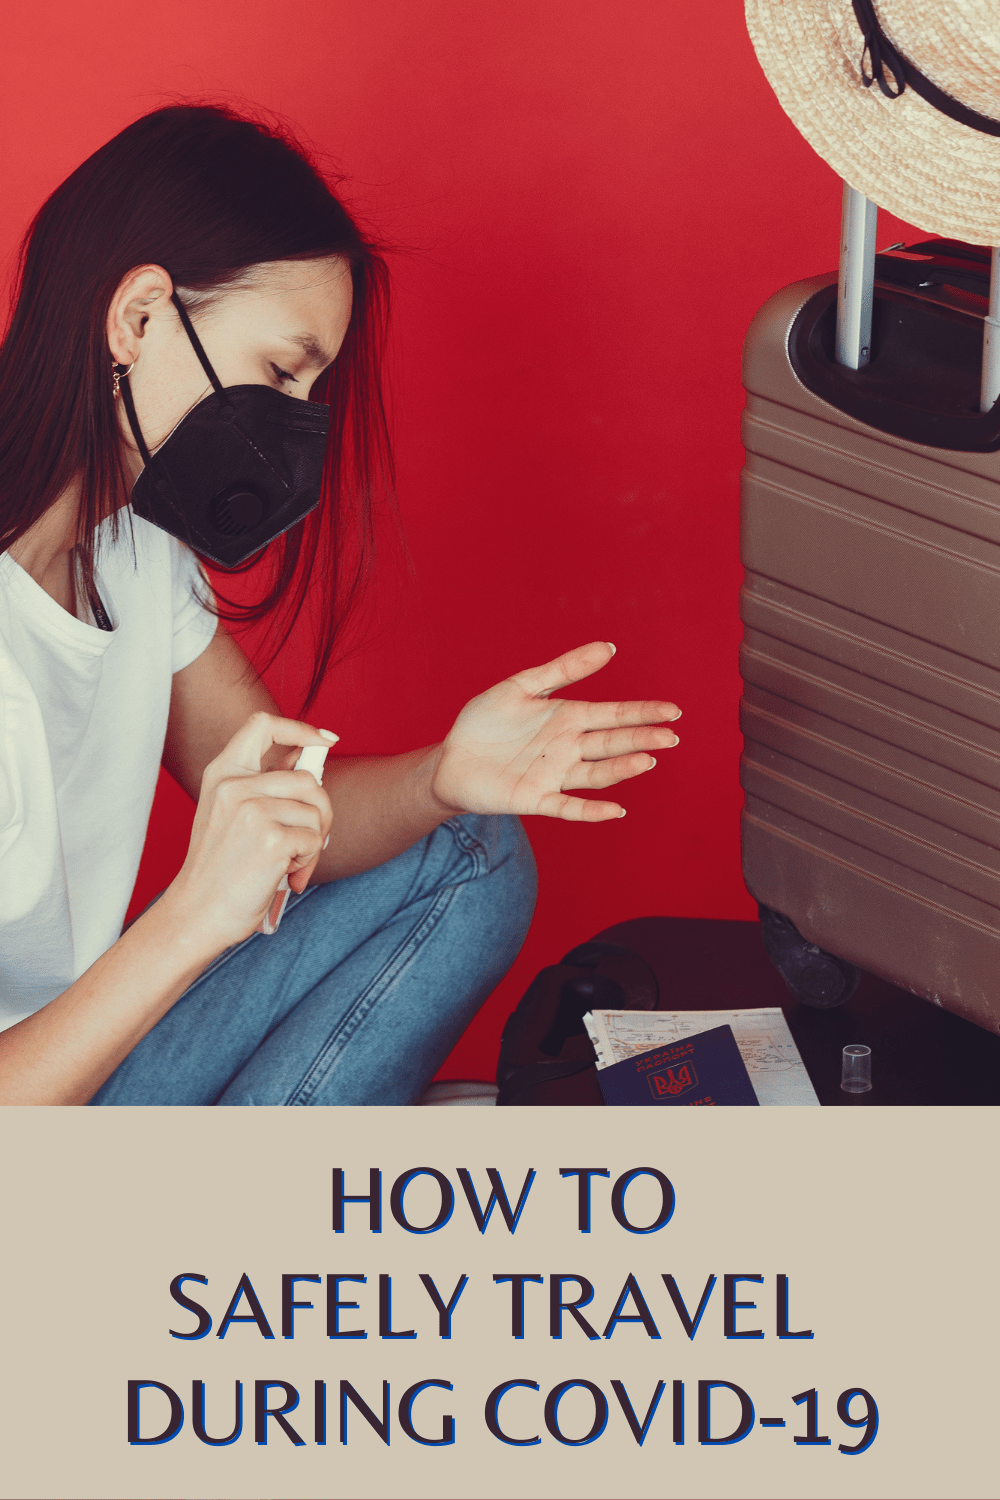 How to Safely Travel During Covid-19